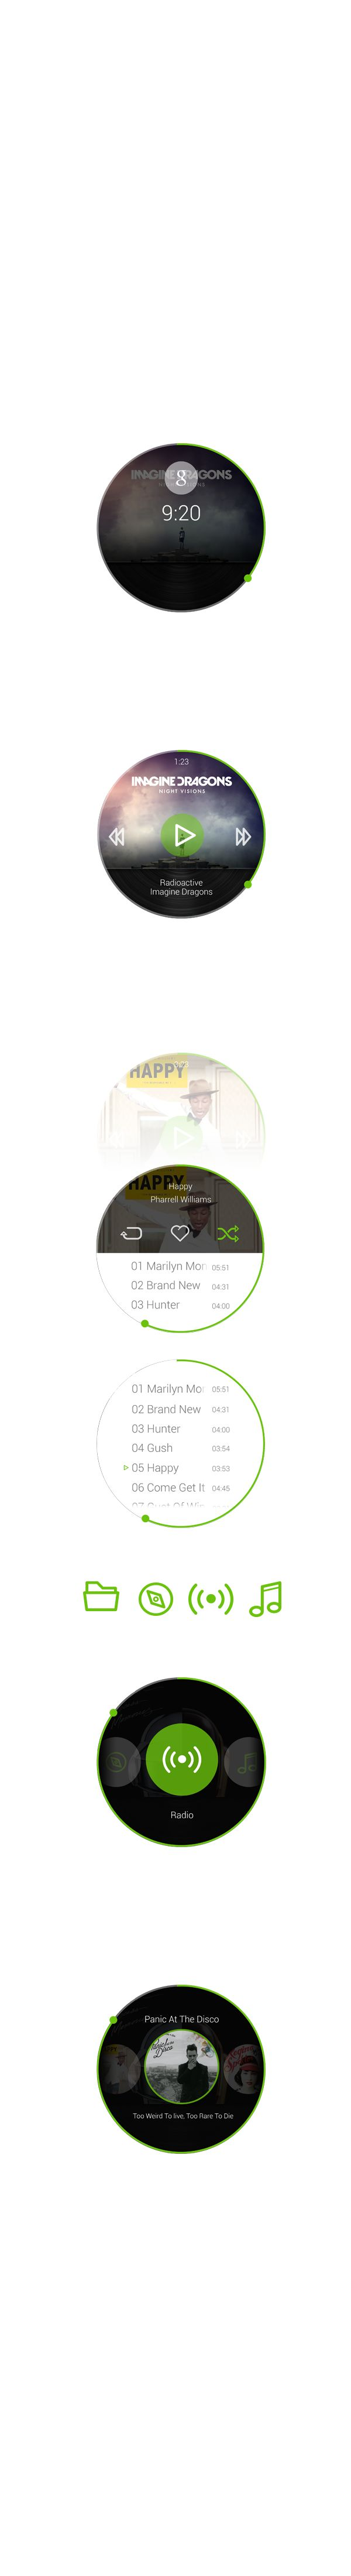 Spotify - Android Wear App by Rico Monteiro, via Behance